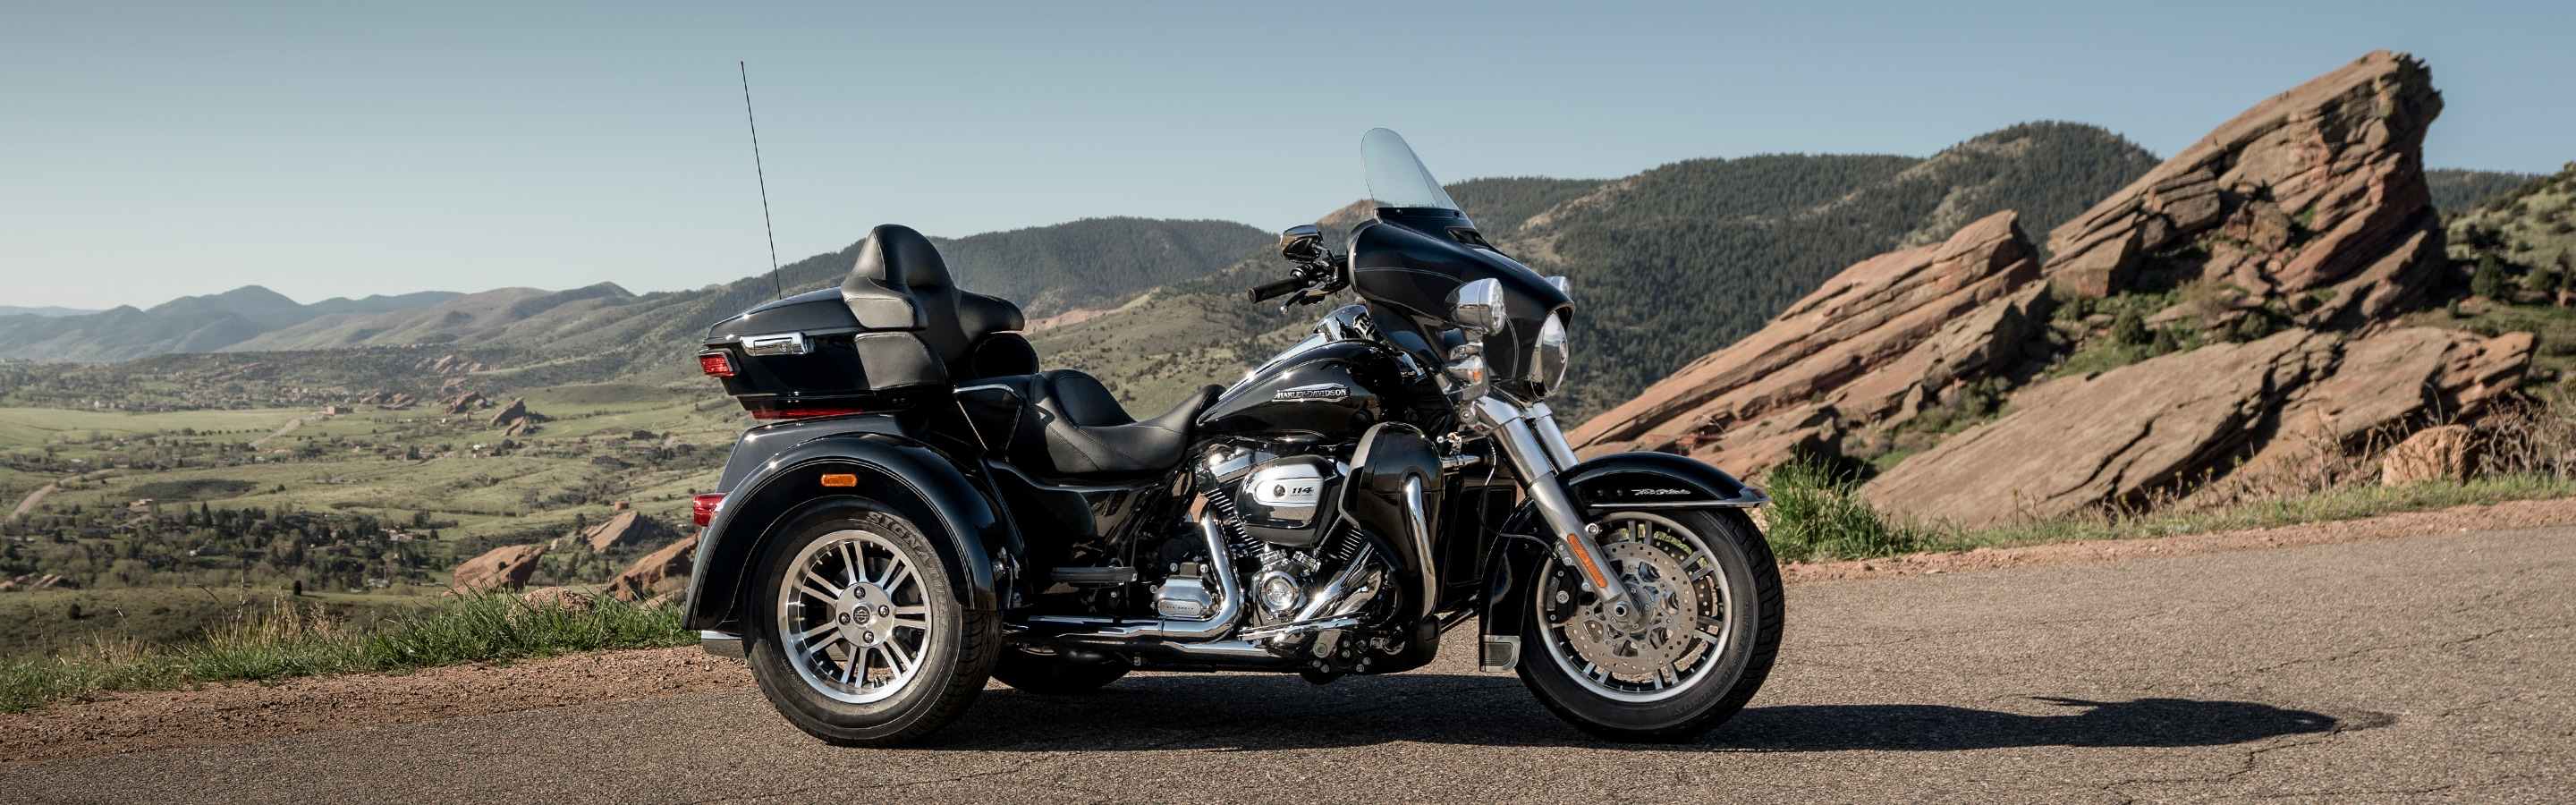 Men Riding 2019 Trike H-D Motorcycle